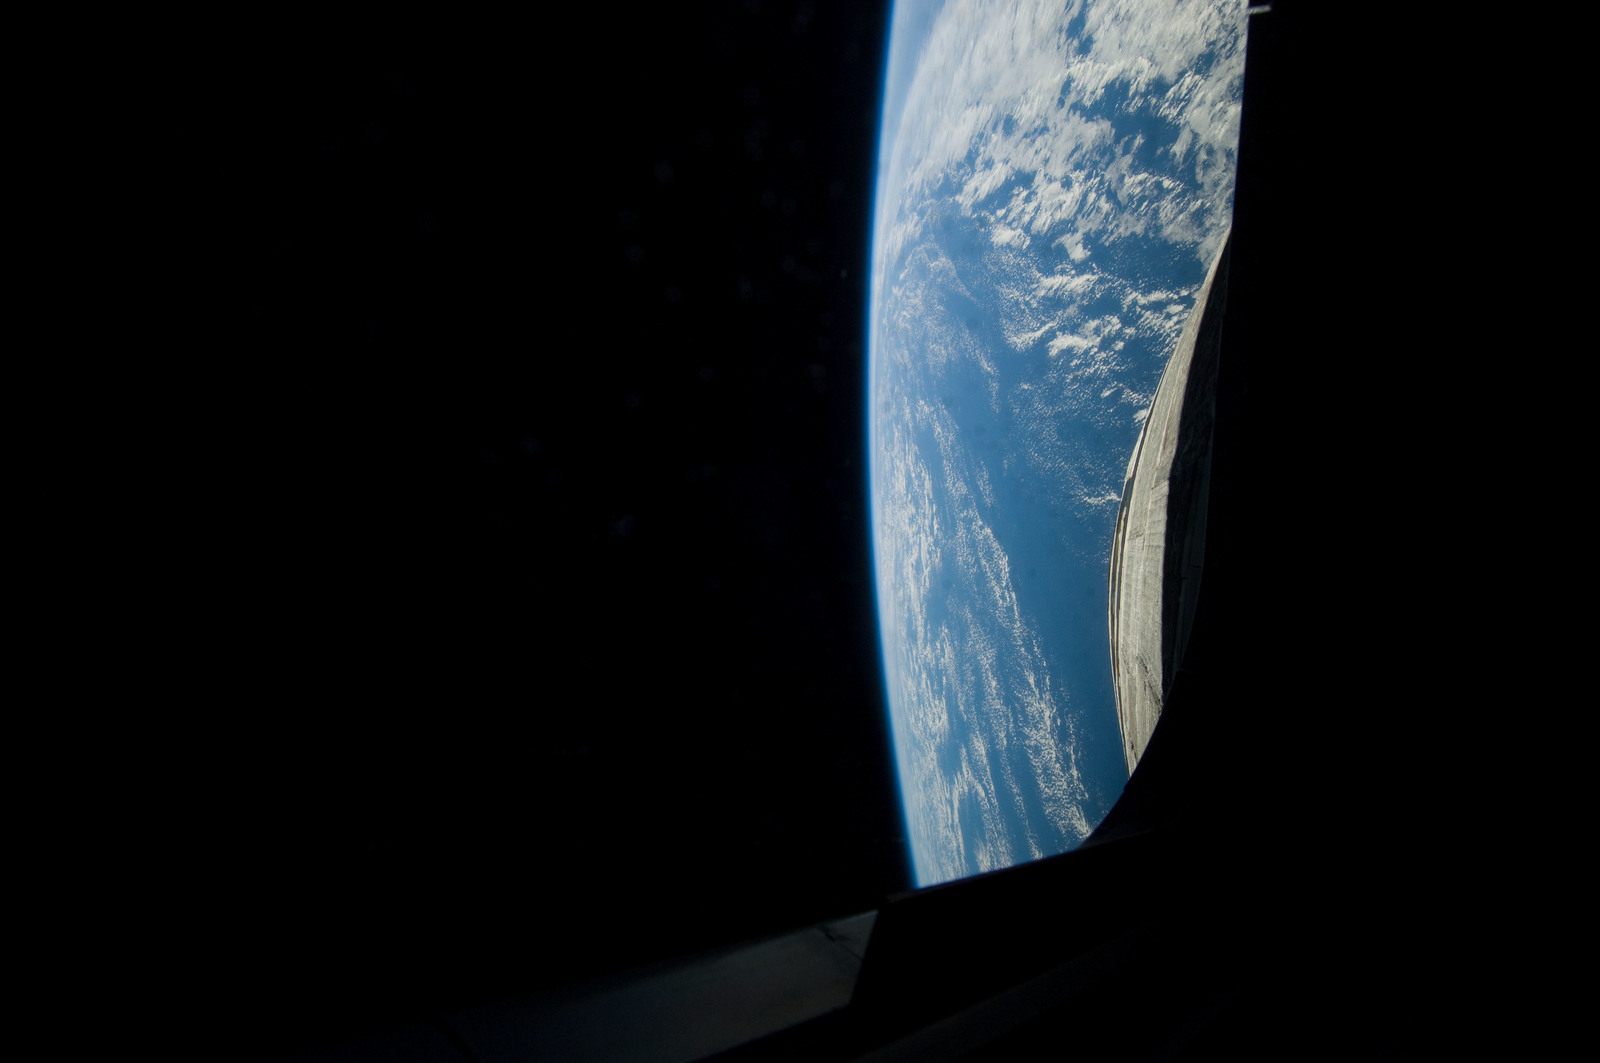 s133E006960 - STS-133 - Earth Observation taken by the STS-133 crew